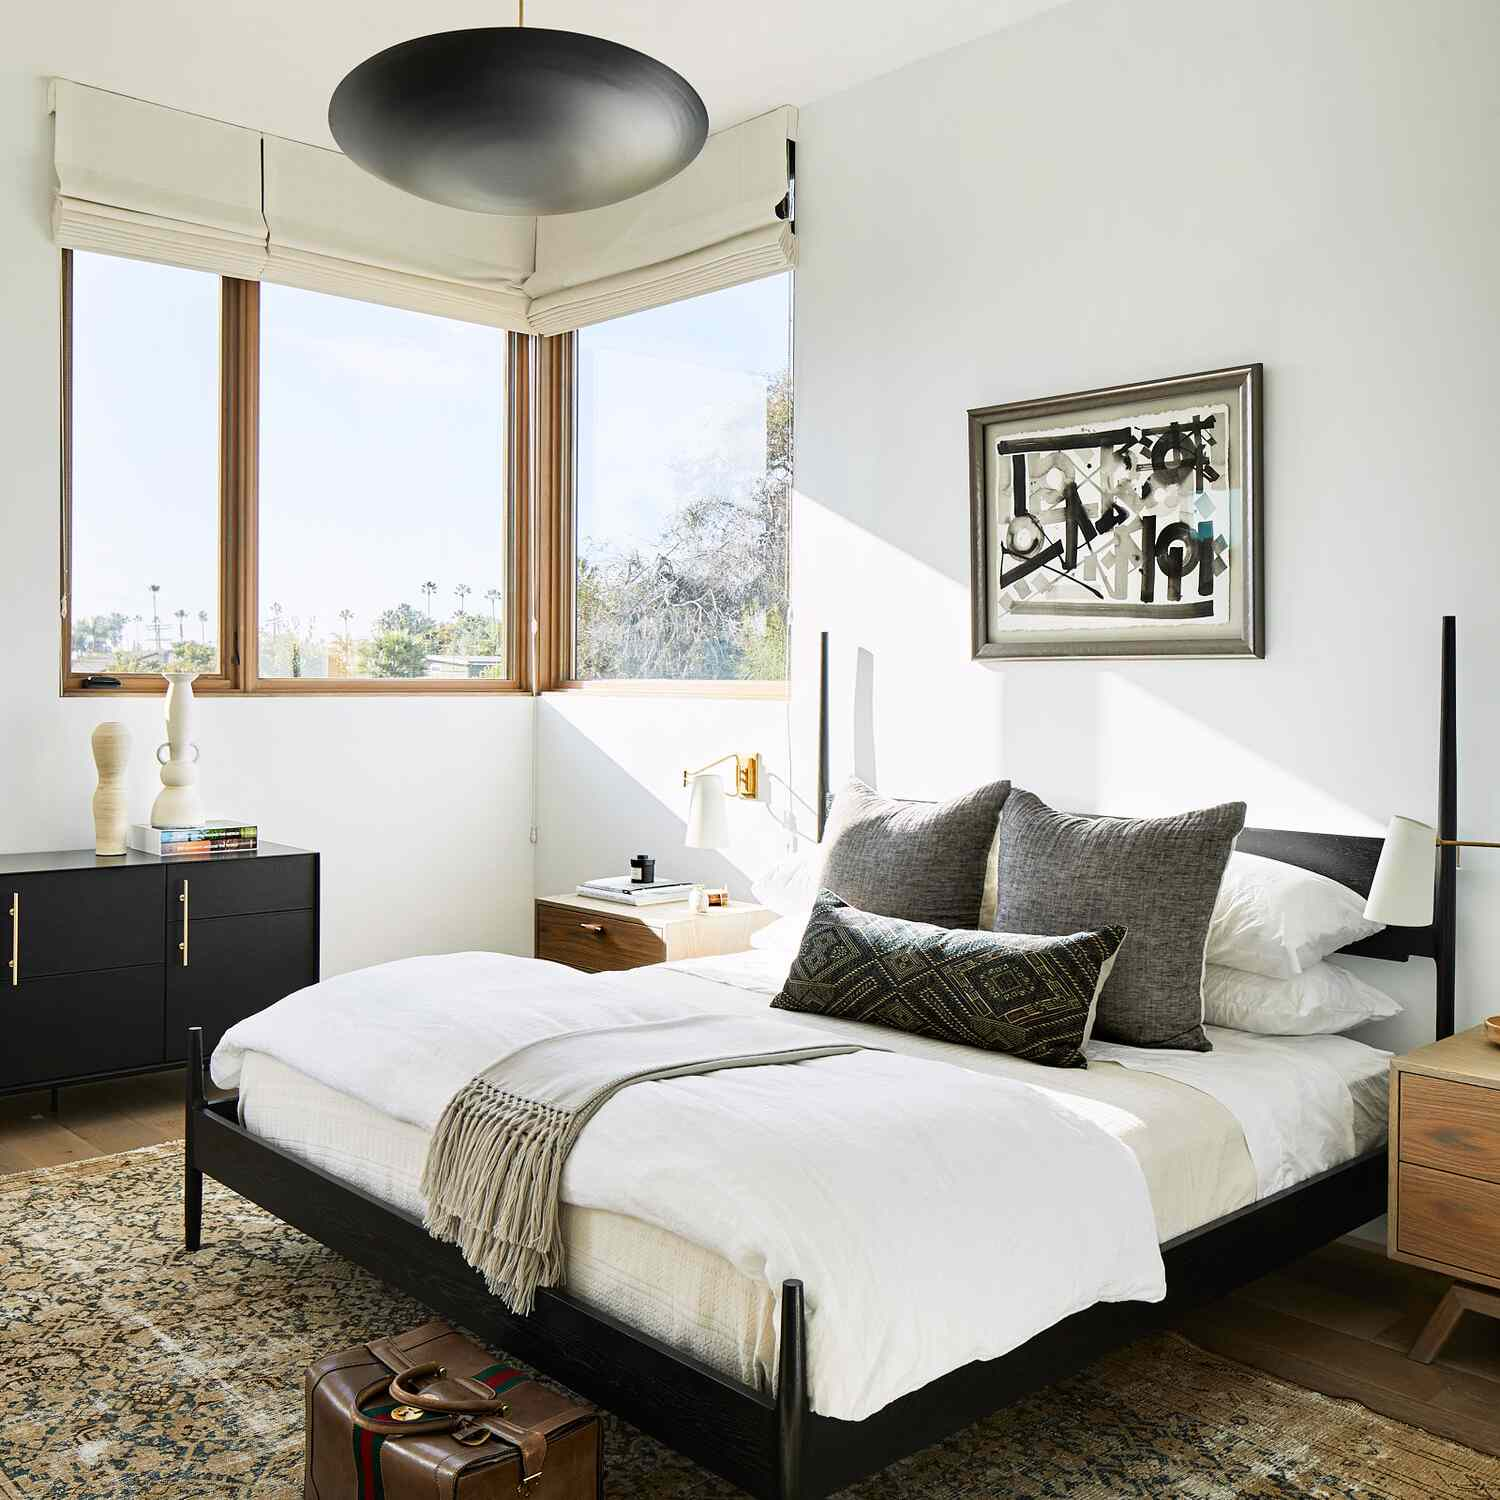 A bedroom with black, white, slate gray, and gold decor